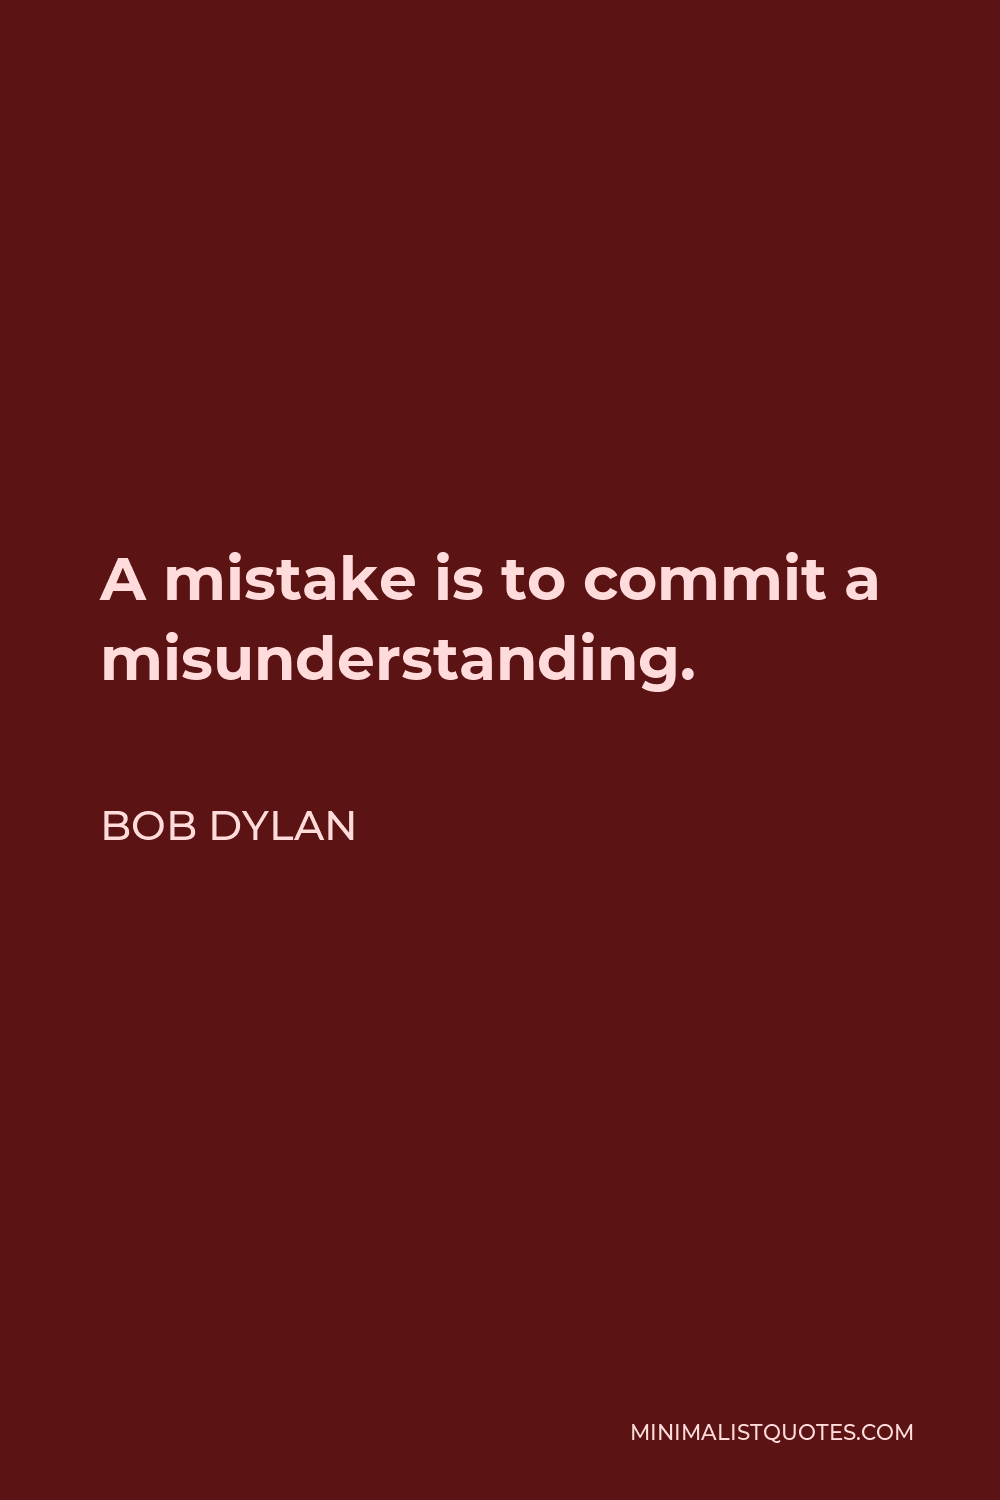 Bob Dylan Quote - A mistake is to commit a misunderstanding.